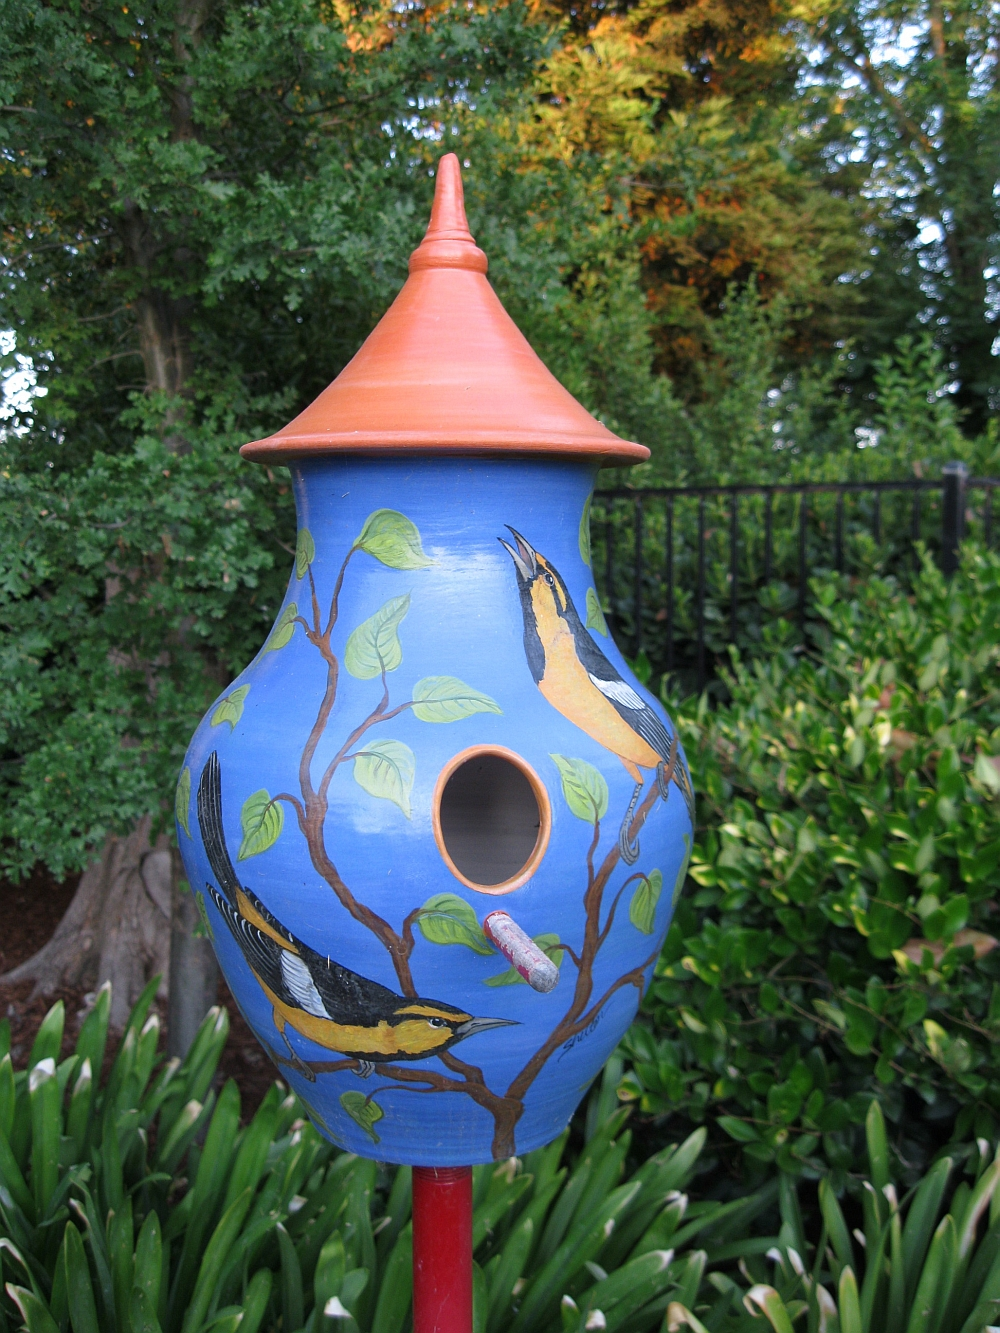 Garden Chairs Susan Shelton, Ceramic Artist - Bird Houses